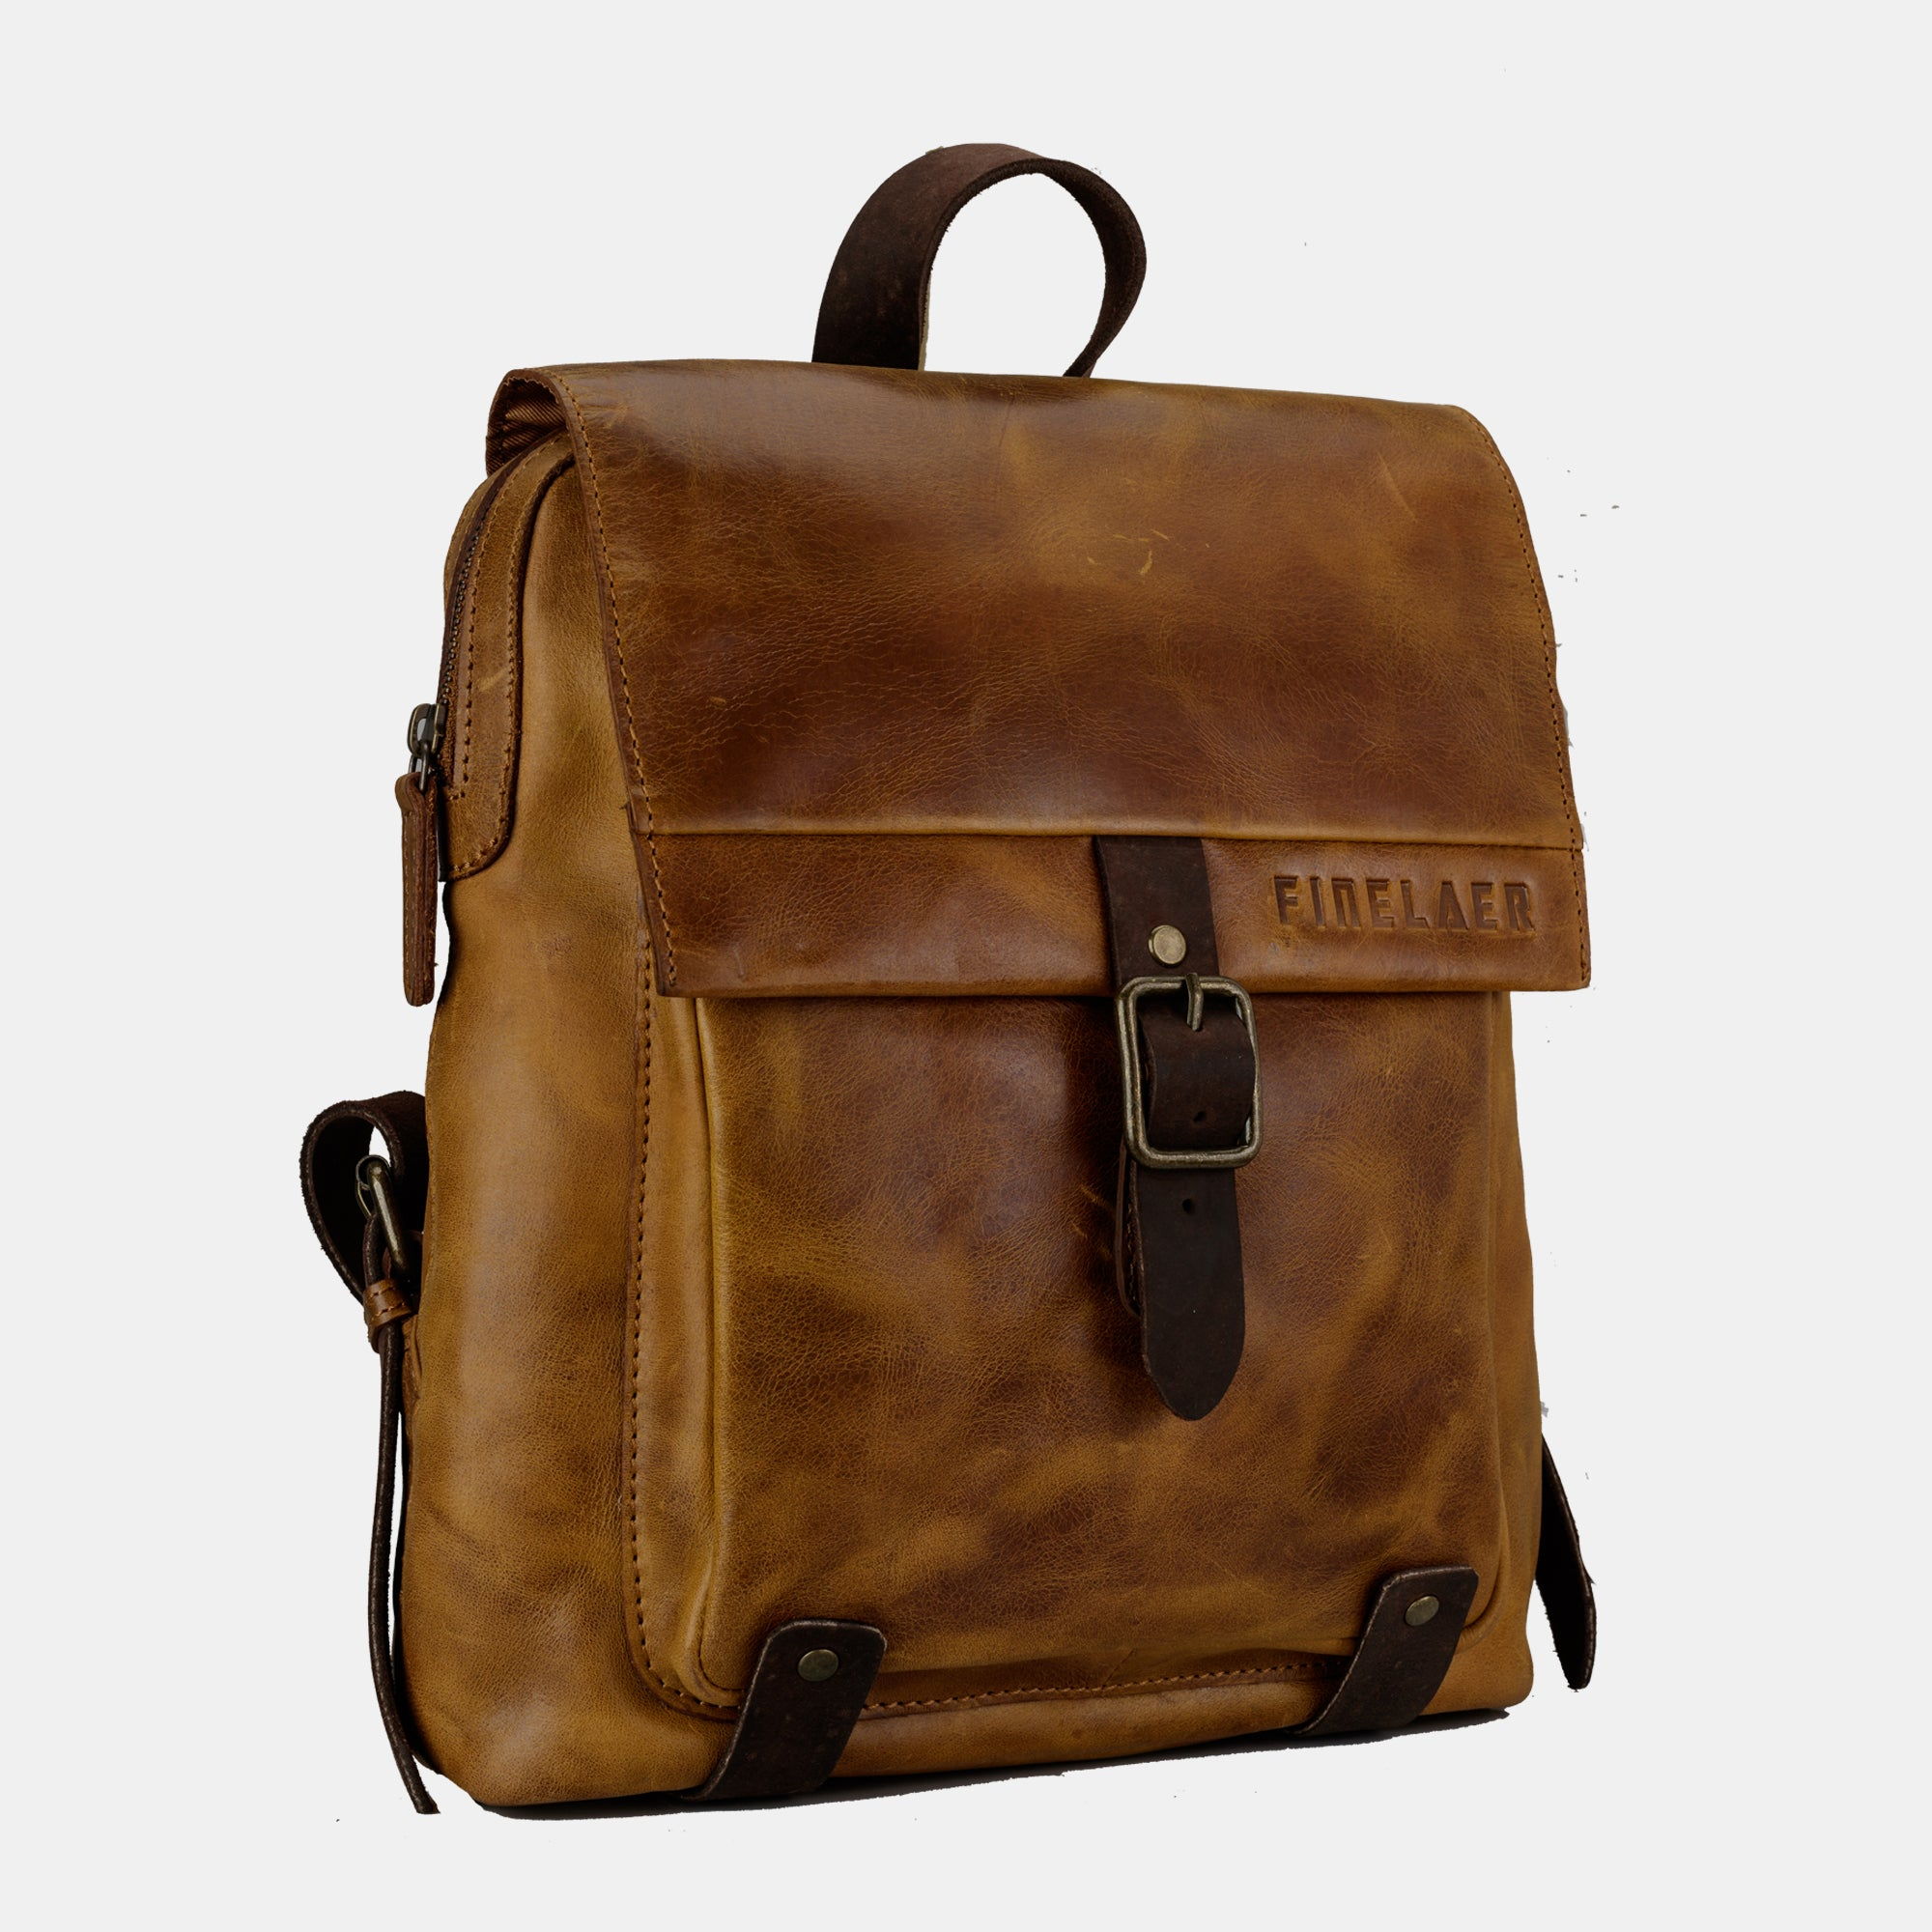 56ac380258 ... Finelaer Women Retro Brown Leather Daypack Backpack ...